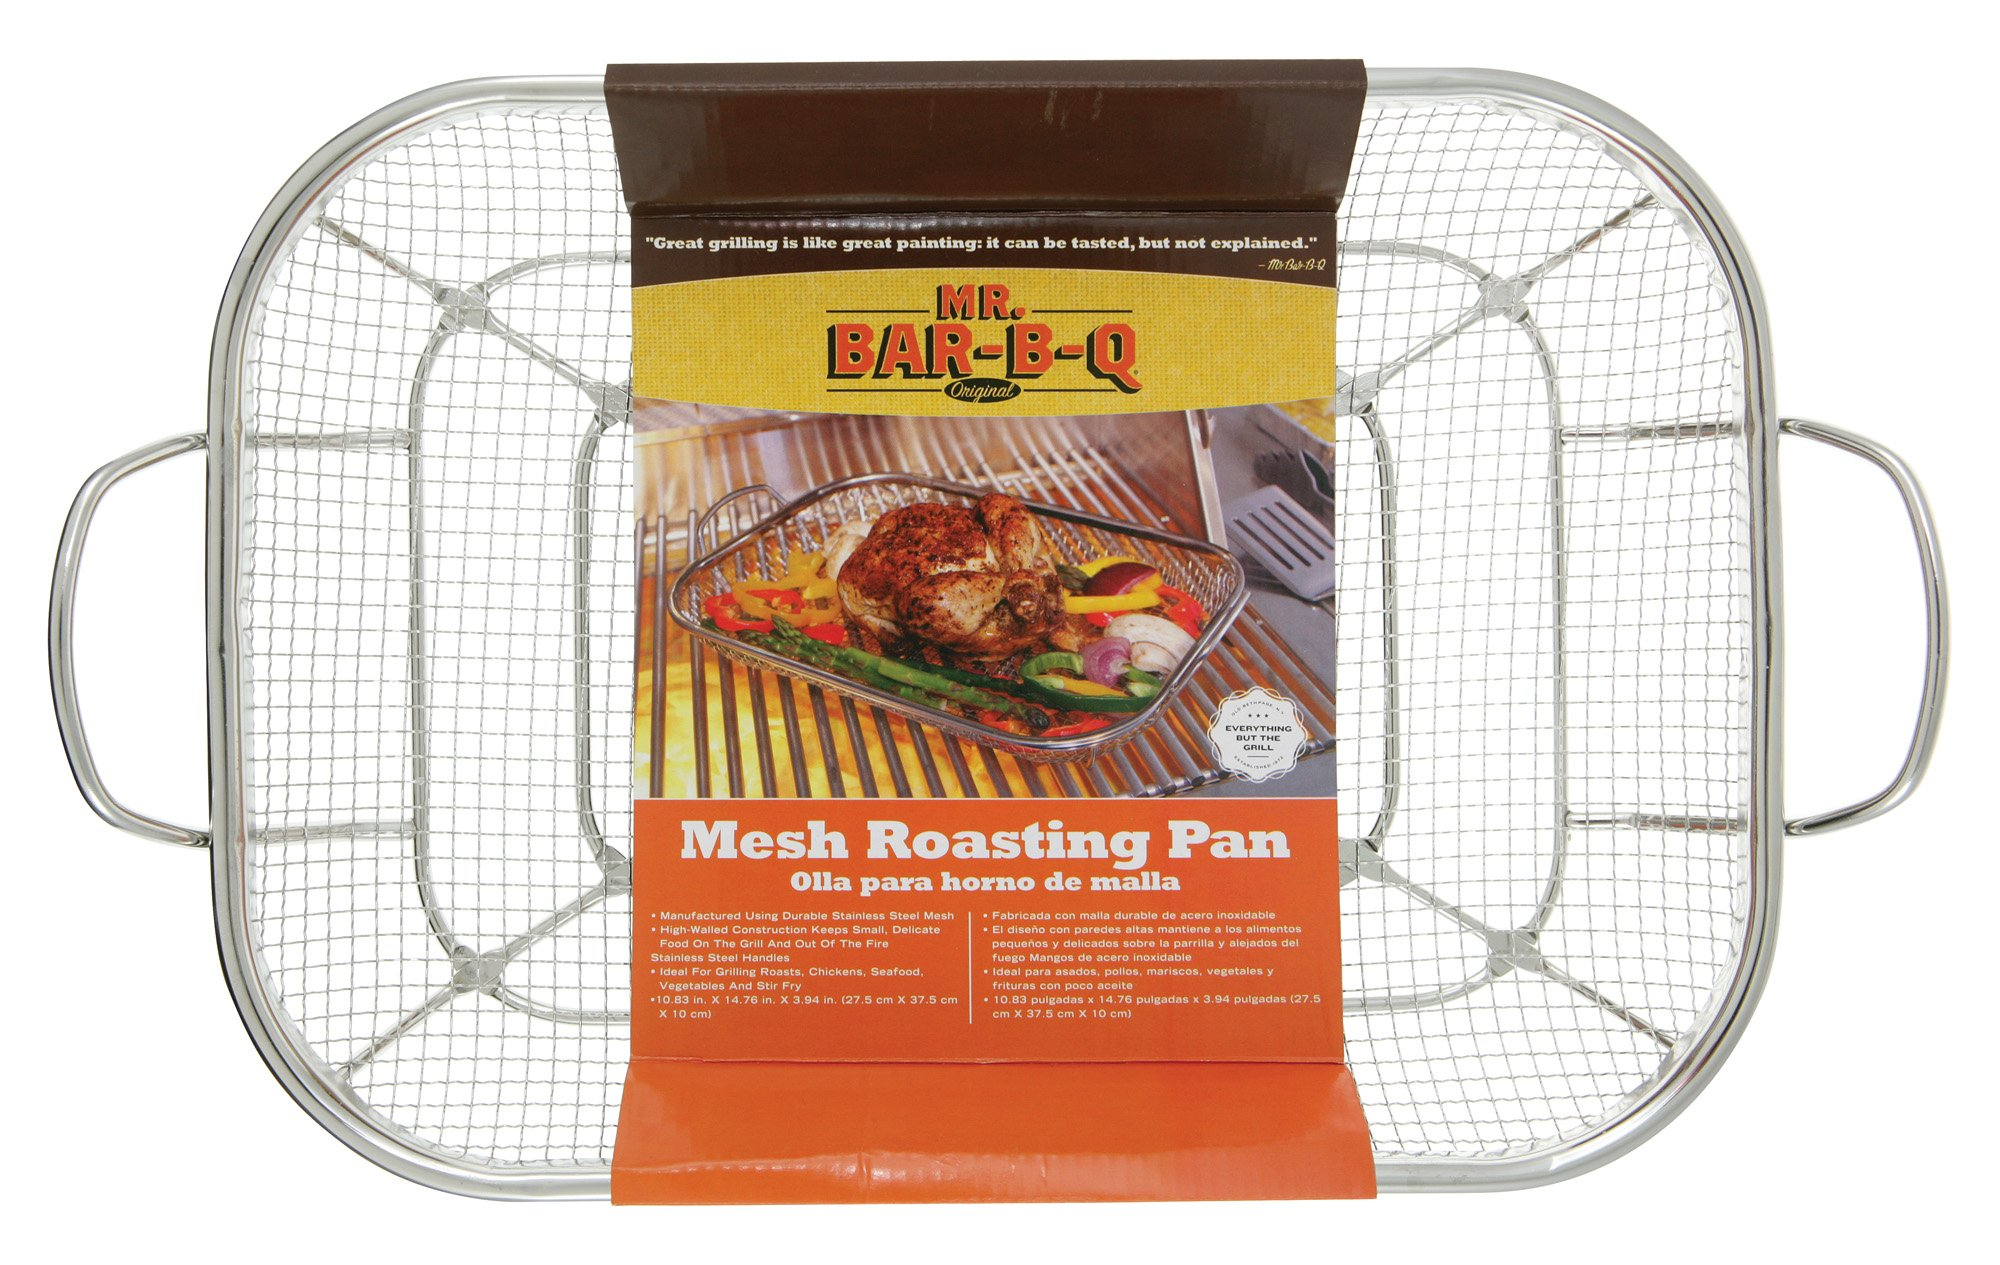 Mr Bar B Q 06805X Stainless Steel Mesh Roasting Pan product image